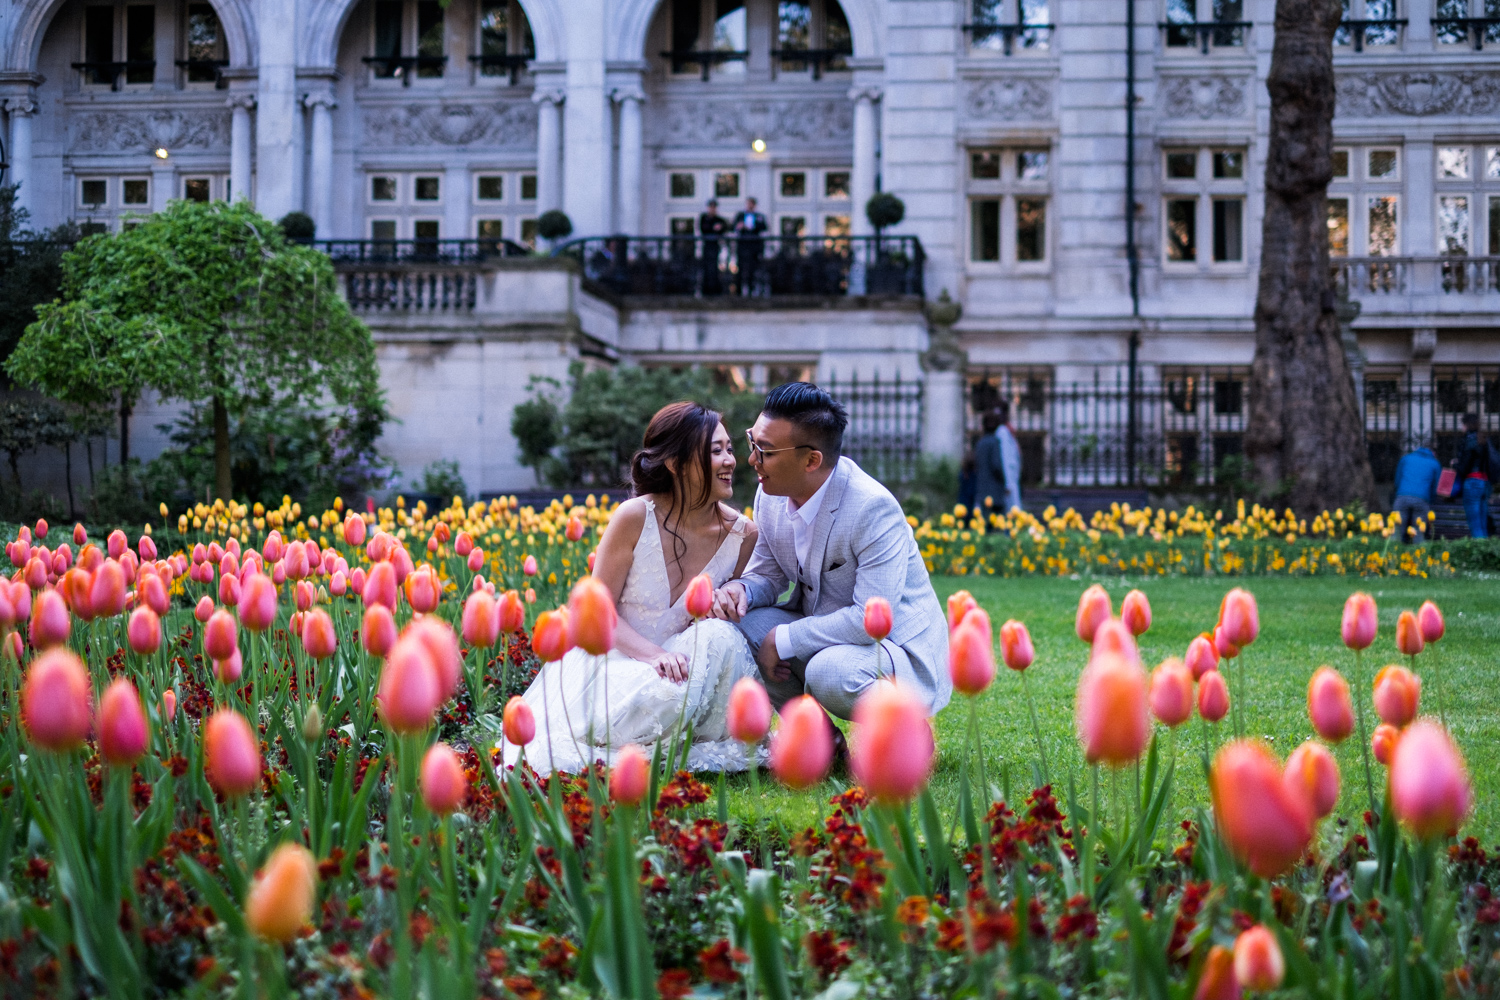 Copy of London pre-wedding photos - flowers